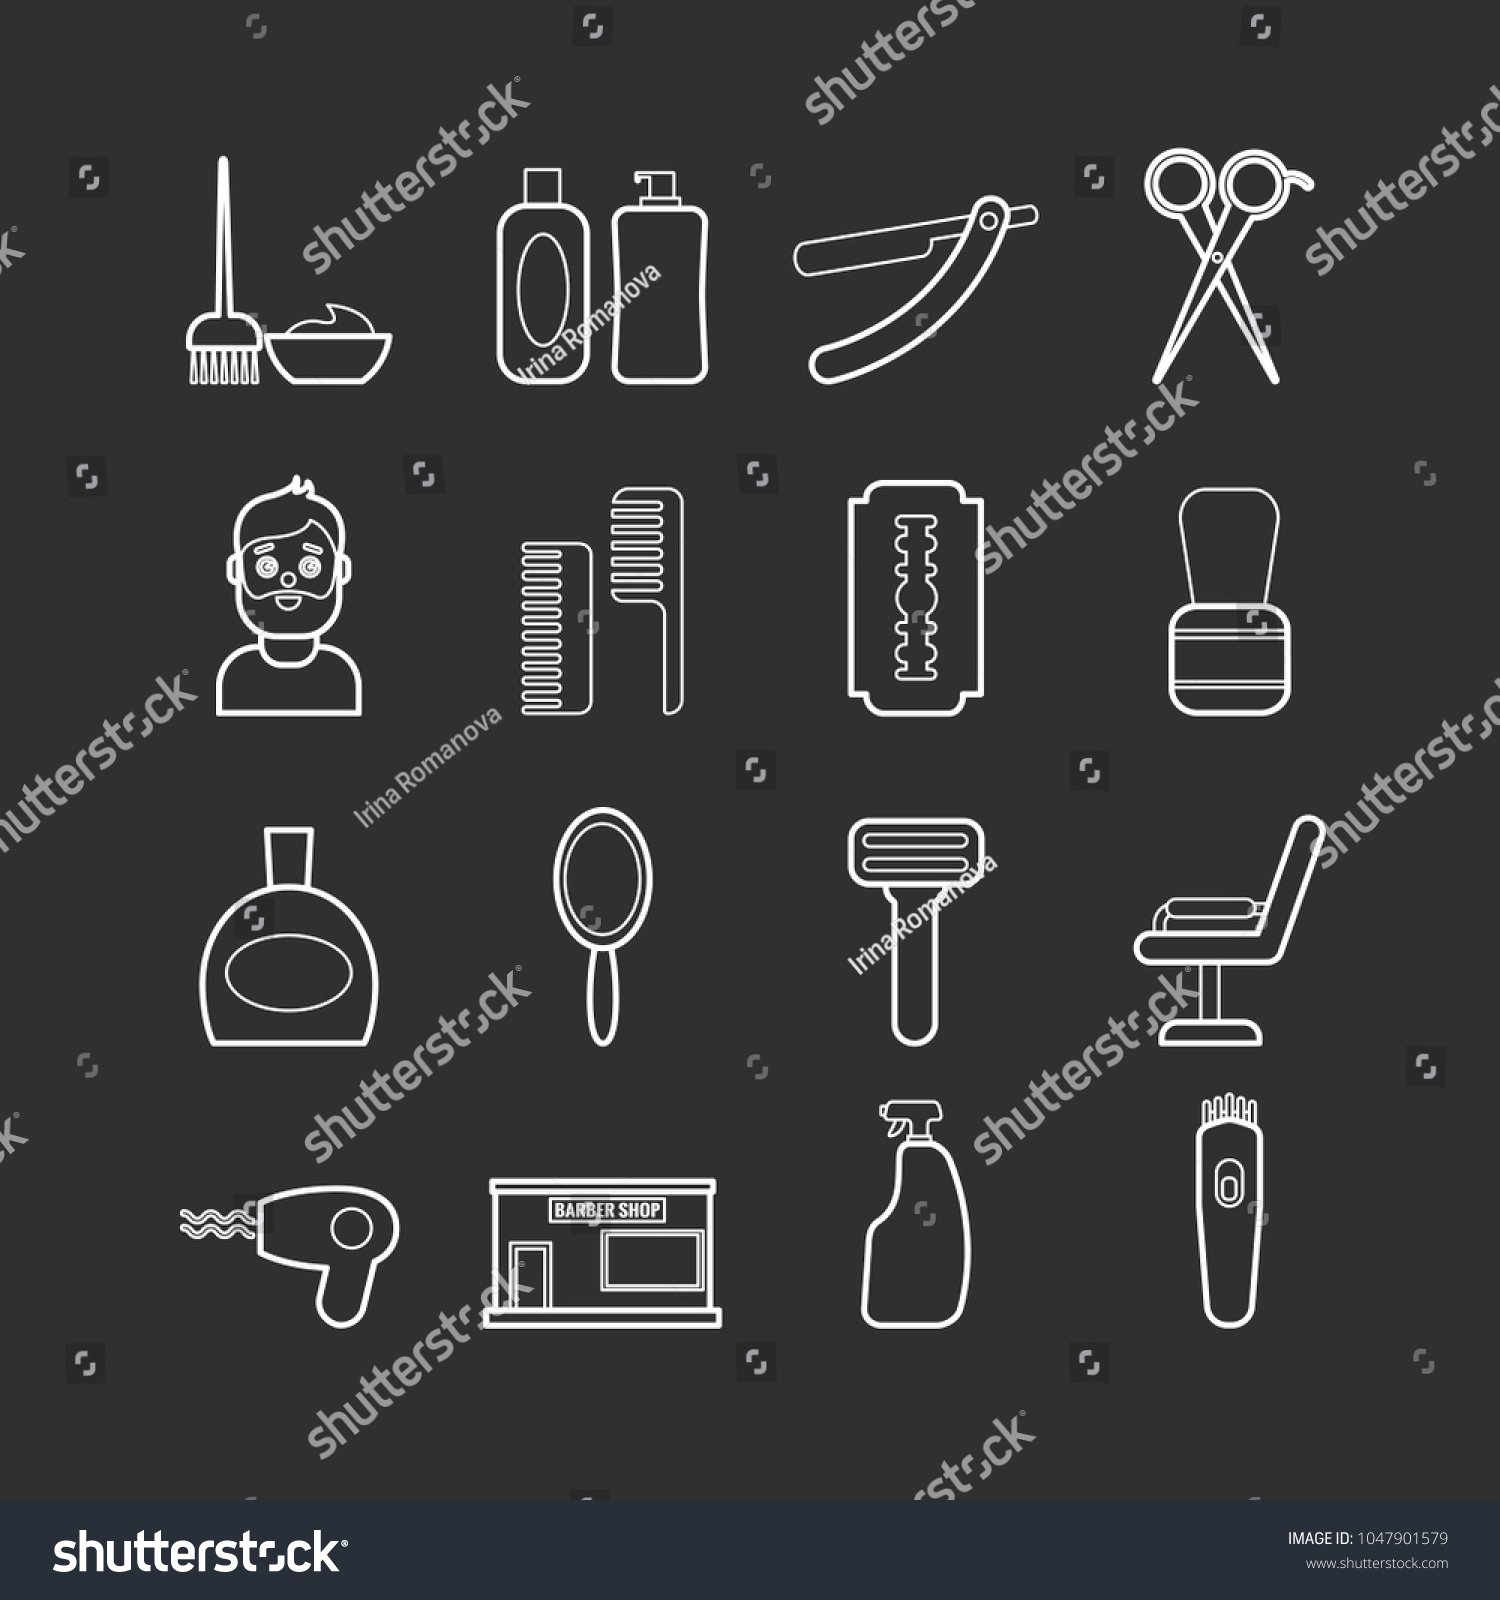 Collection Vector Line Barber Tools Icons Stock Vector (Royalty Free